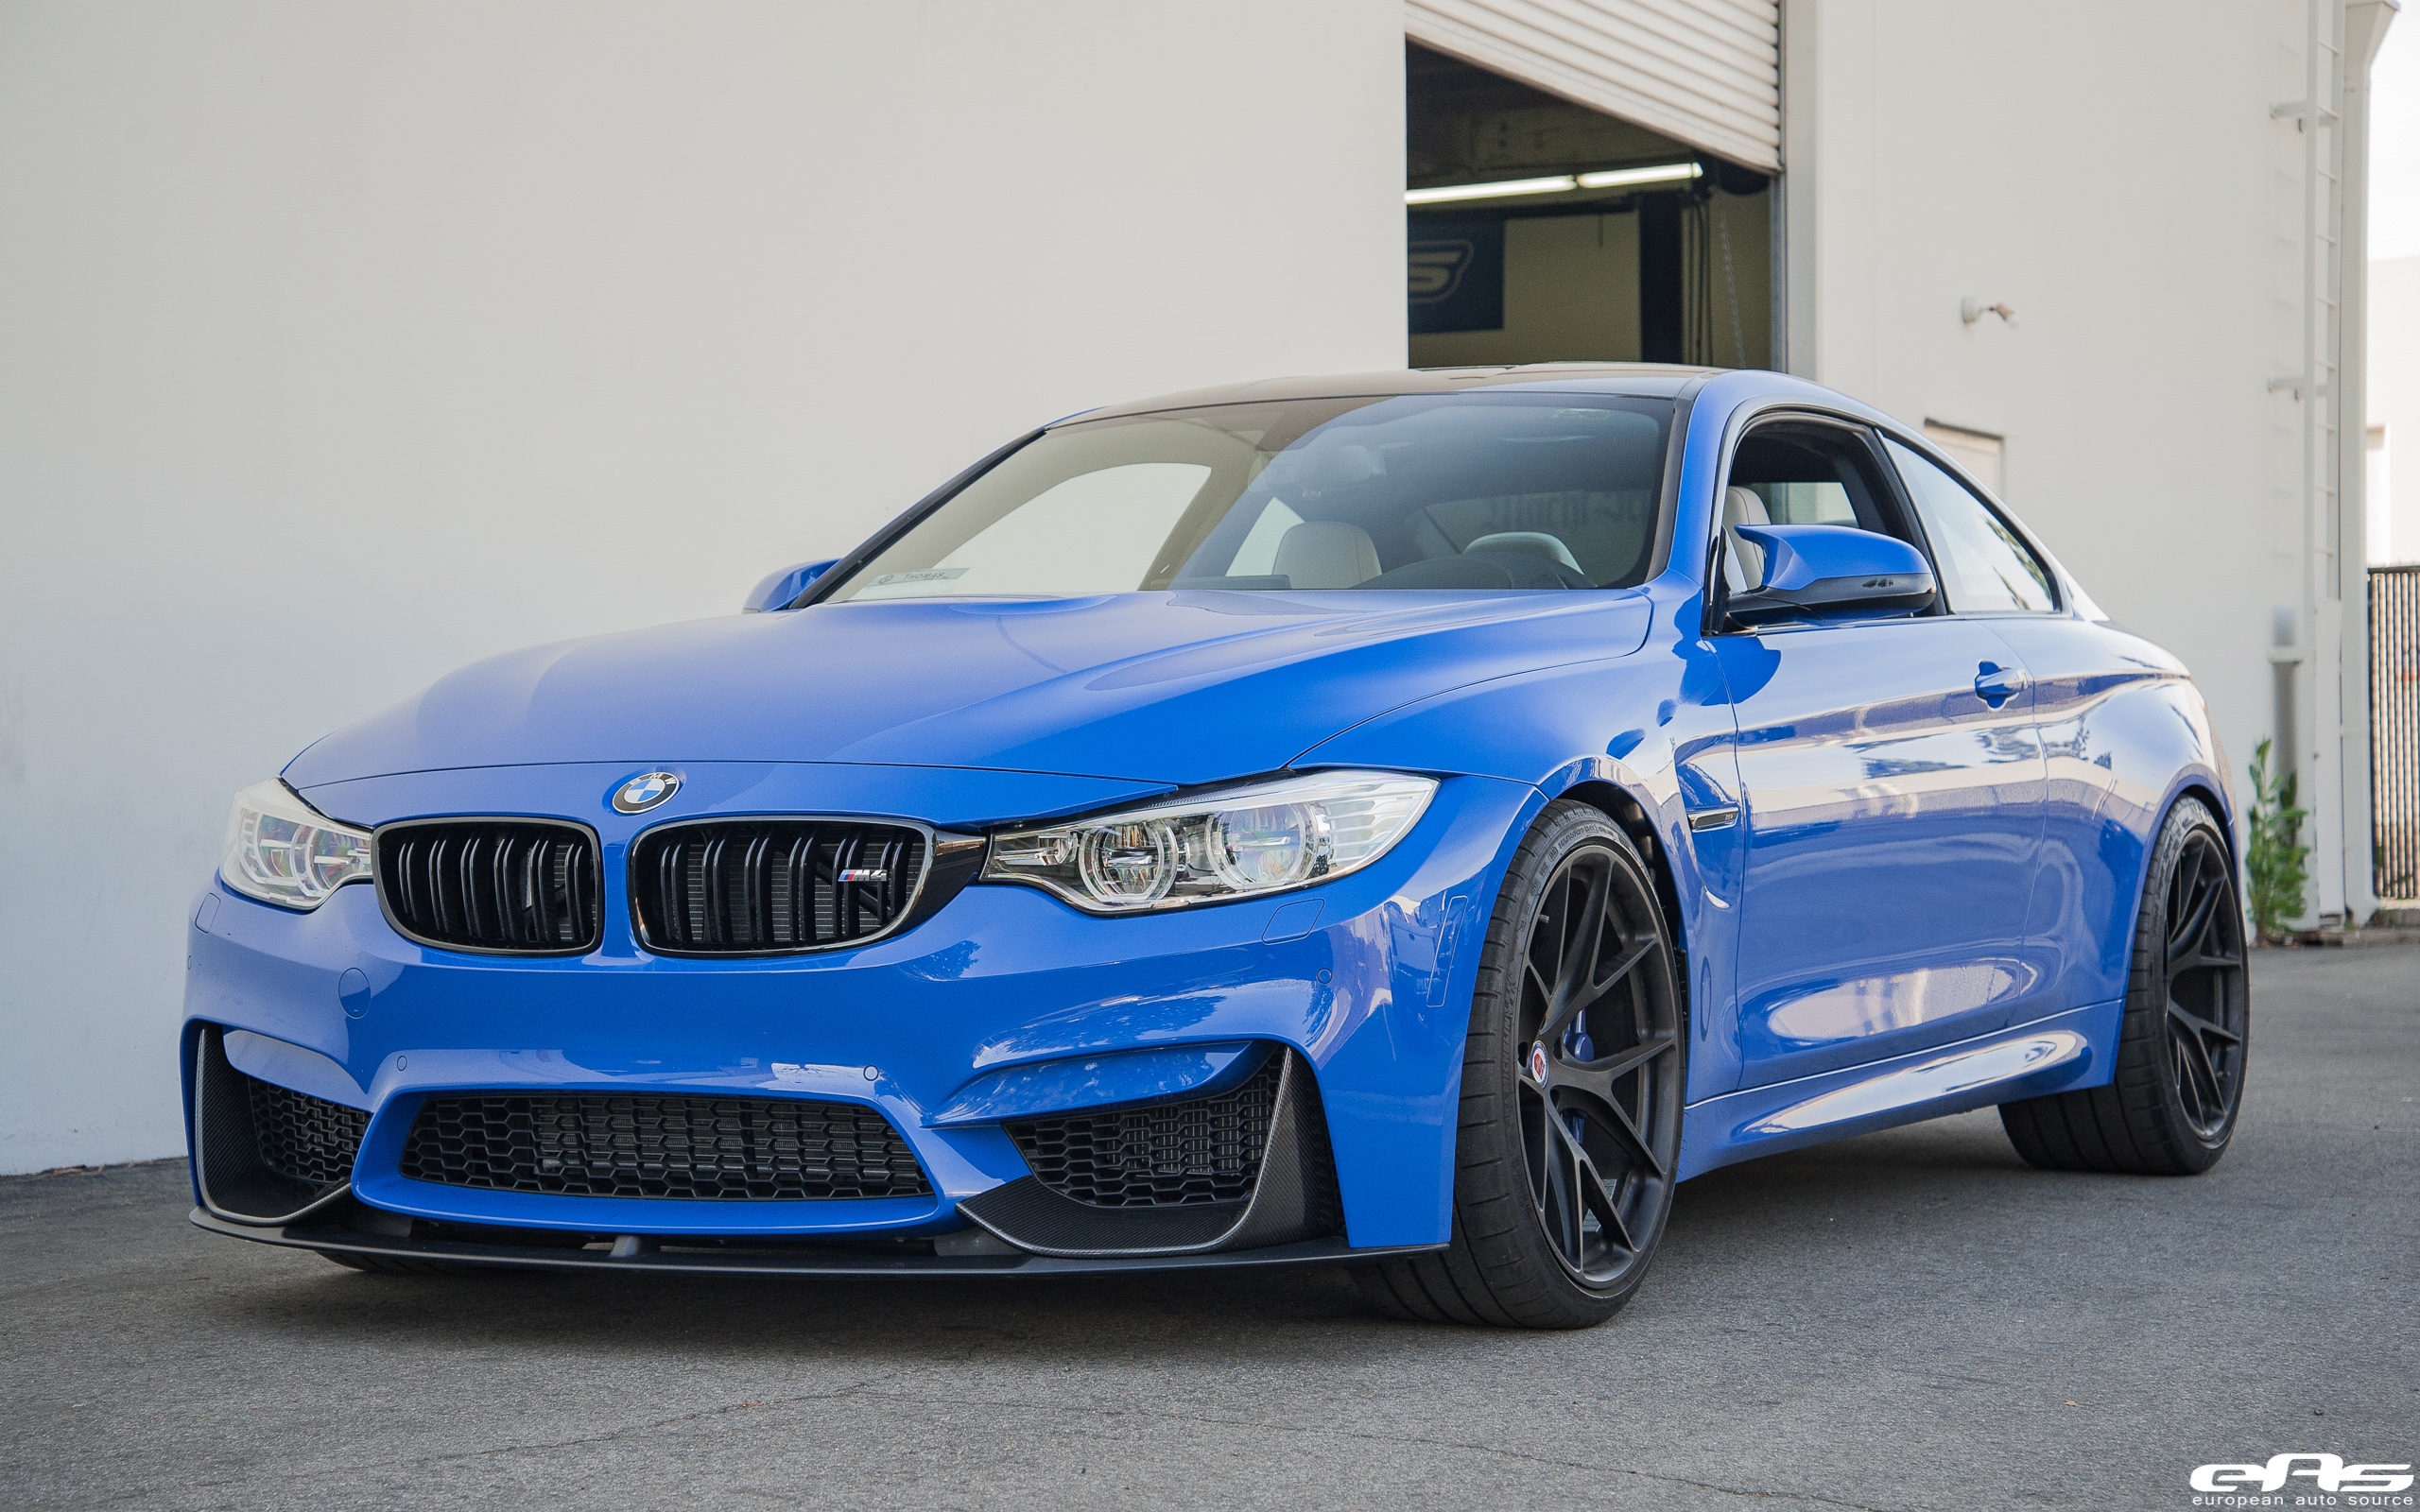 santorini blue f82 m4 with m performance parts and hre wheels. Black Bedroom Furniture Sets. Home Design Ideas